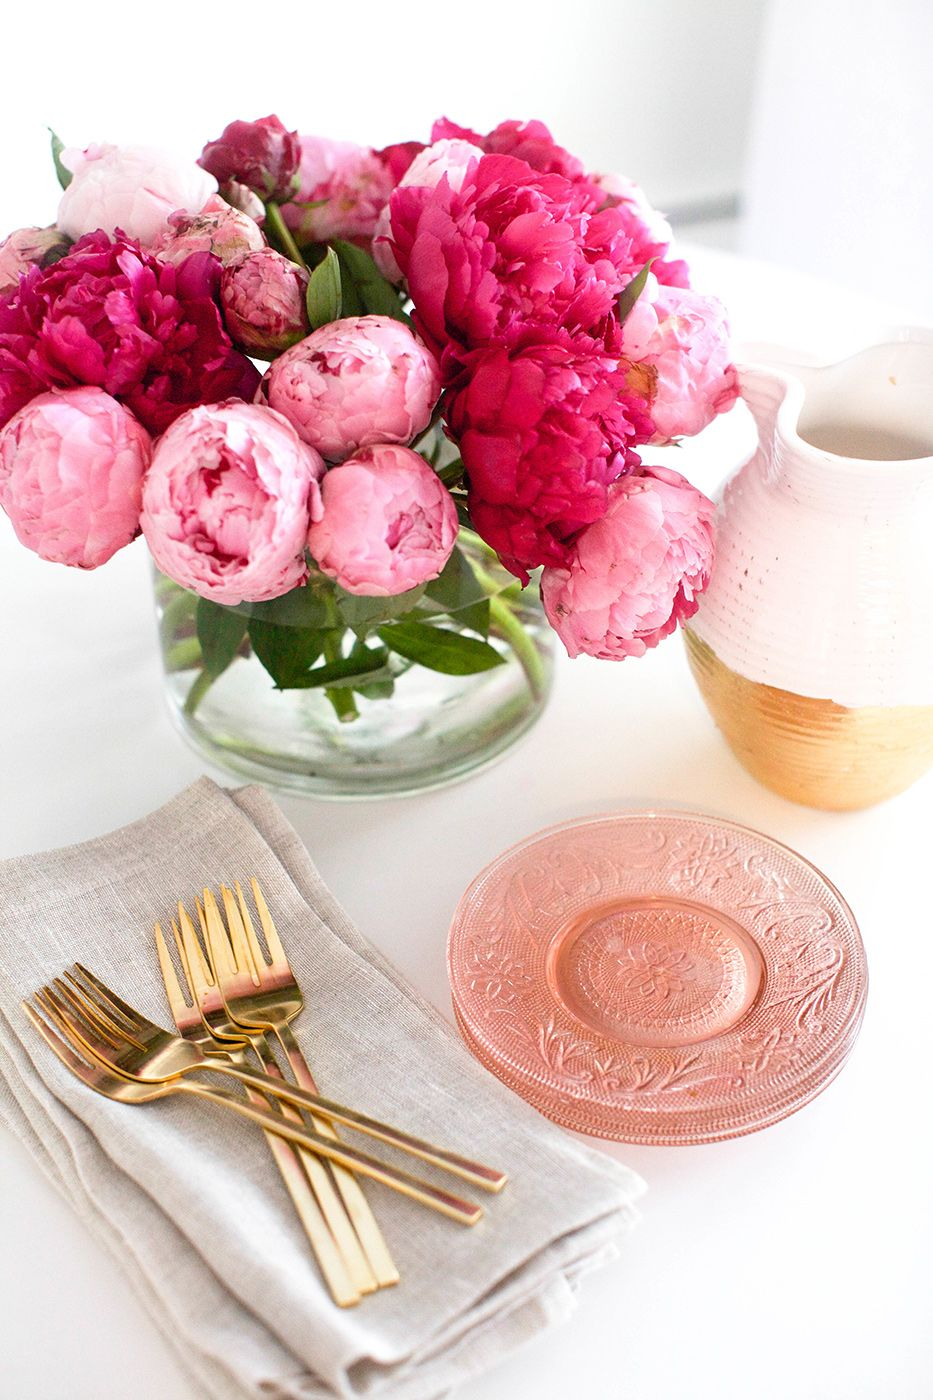 5 Incredible Flower Arrangements For a Last-Minute Dining Room Decor 2